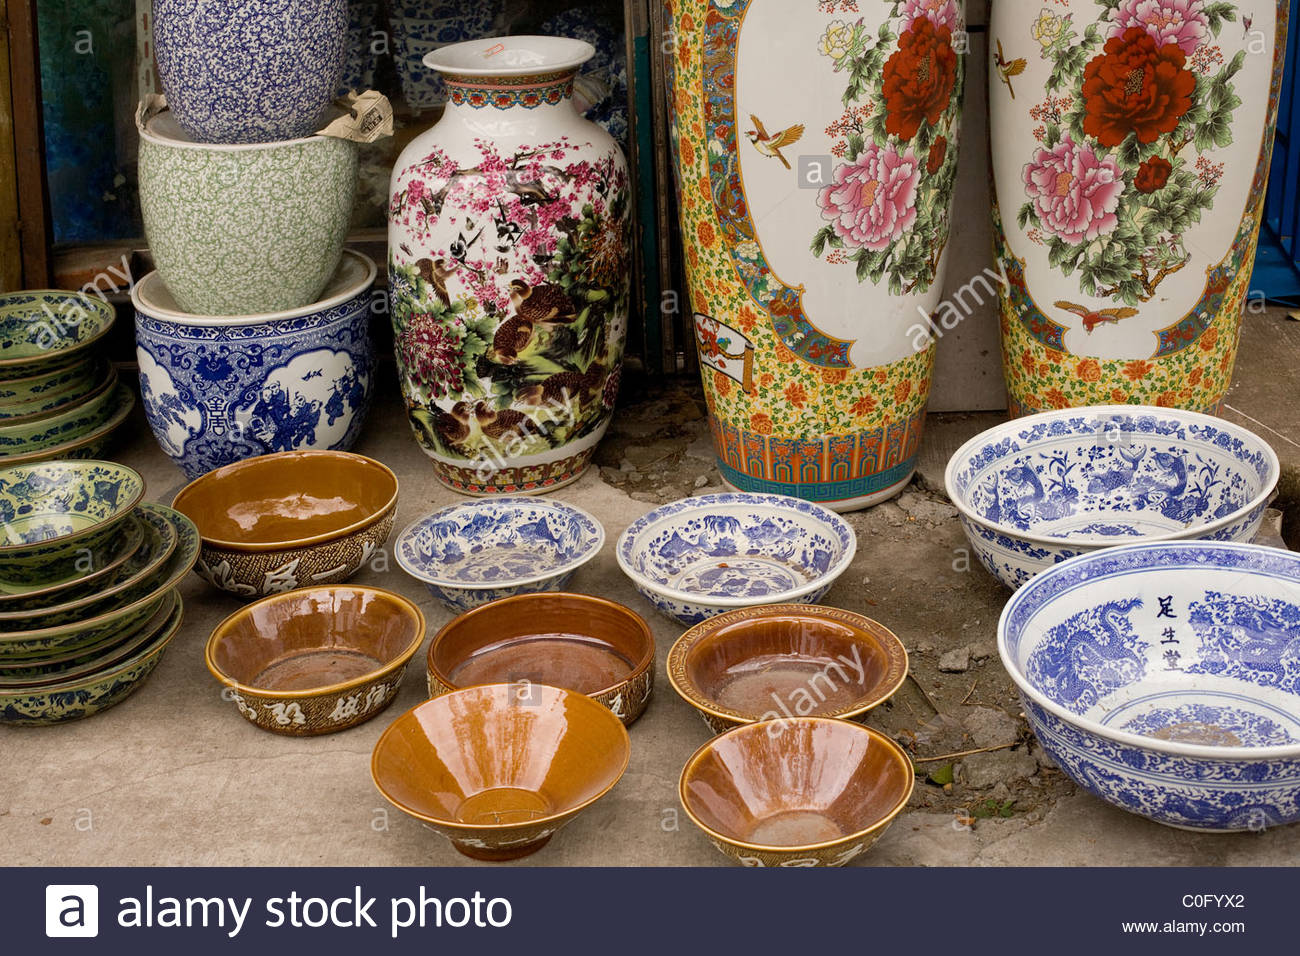 Chinese vases on sale on a street of Suzhou, China - Stock Image